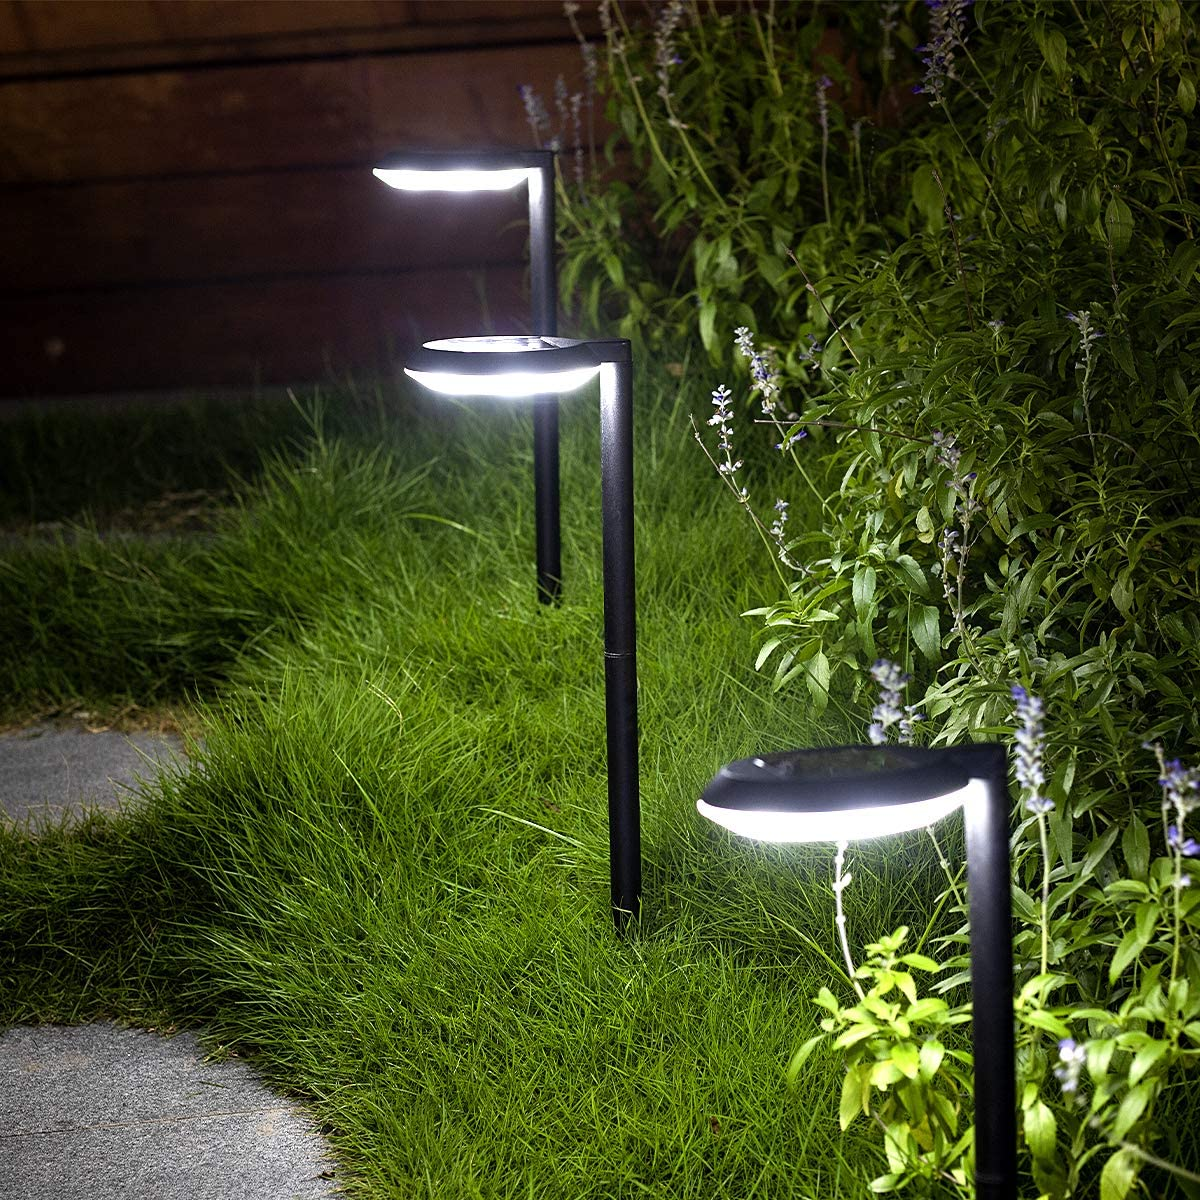 Outdoor Solar Path Lights Waterproof Landscape Pathway Light with 6 White LEDs Garden Lighting Decorative for Patio Driveway Backyard (Black-4 Pack)